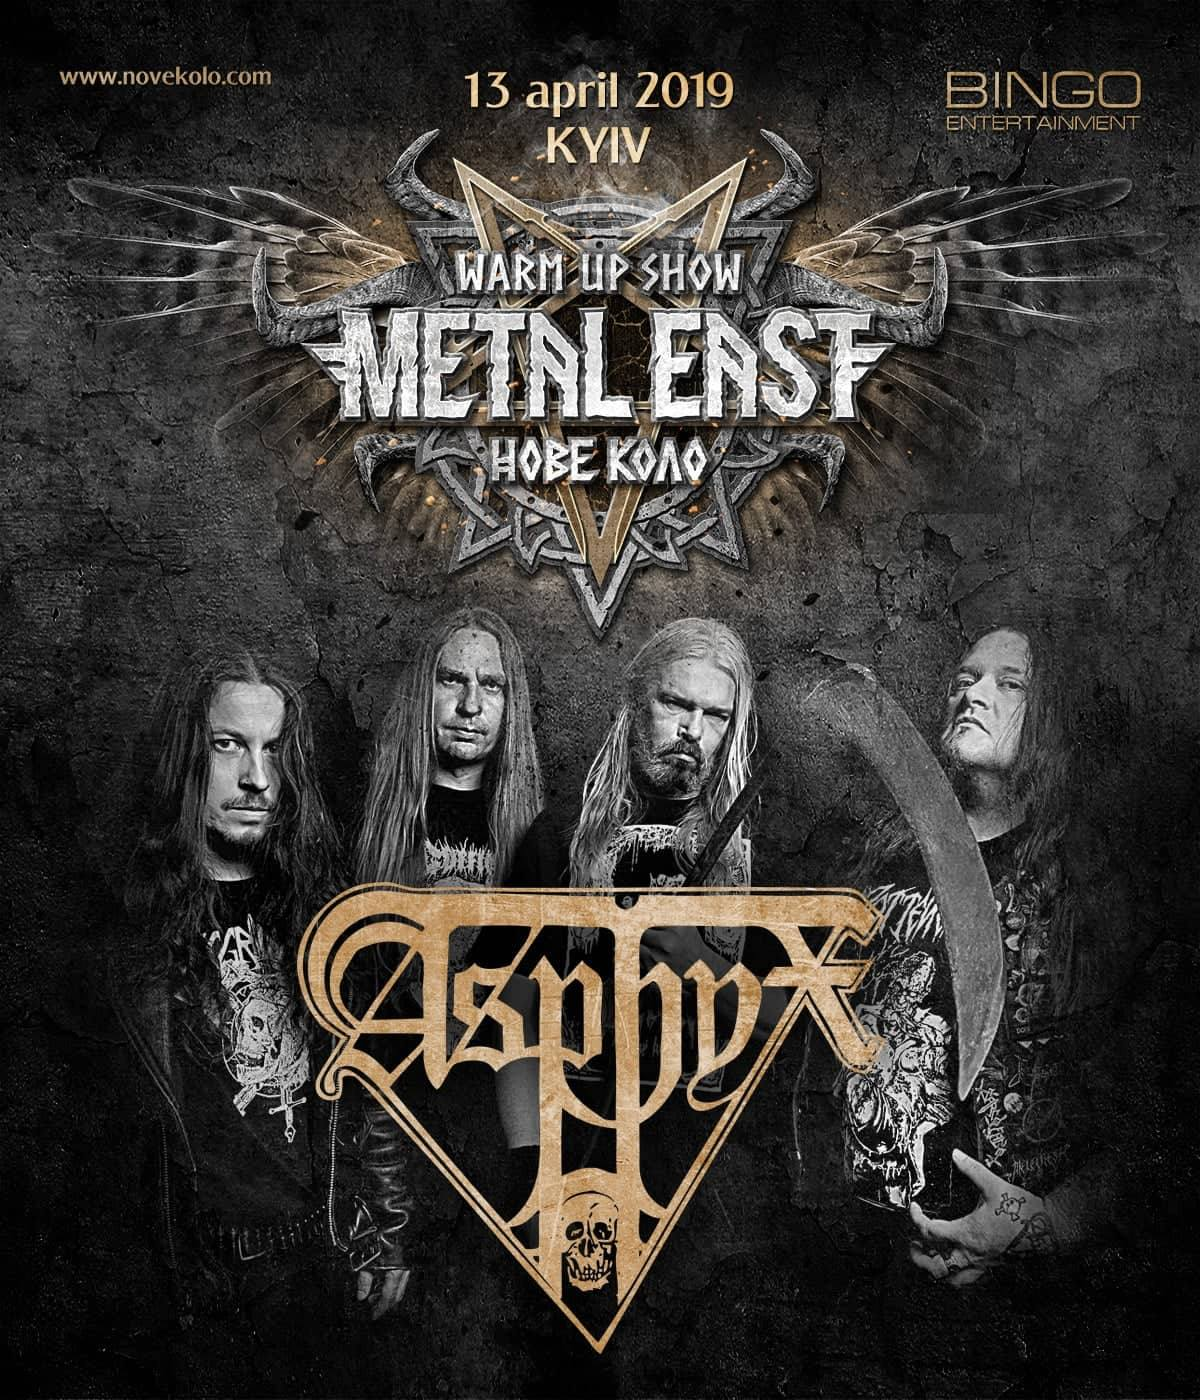 Second foreign headliner of the Metal East Nove Kolo warm-up party in Kyiv